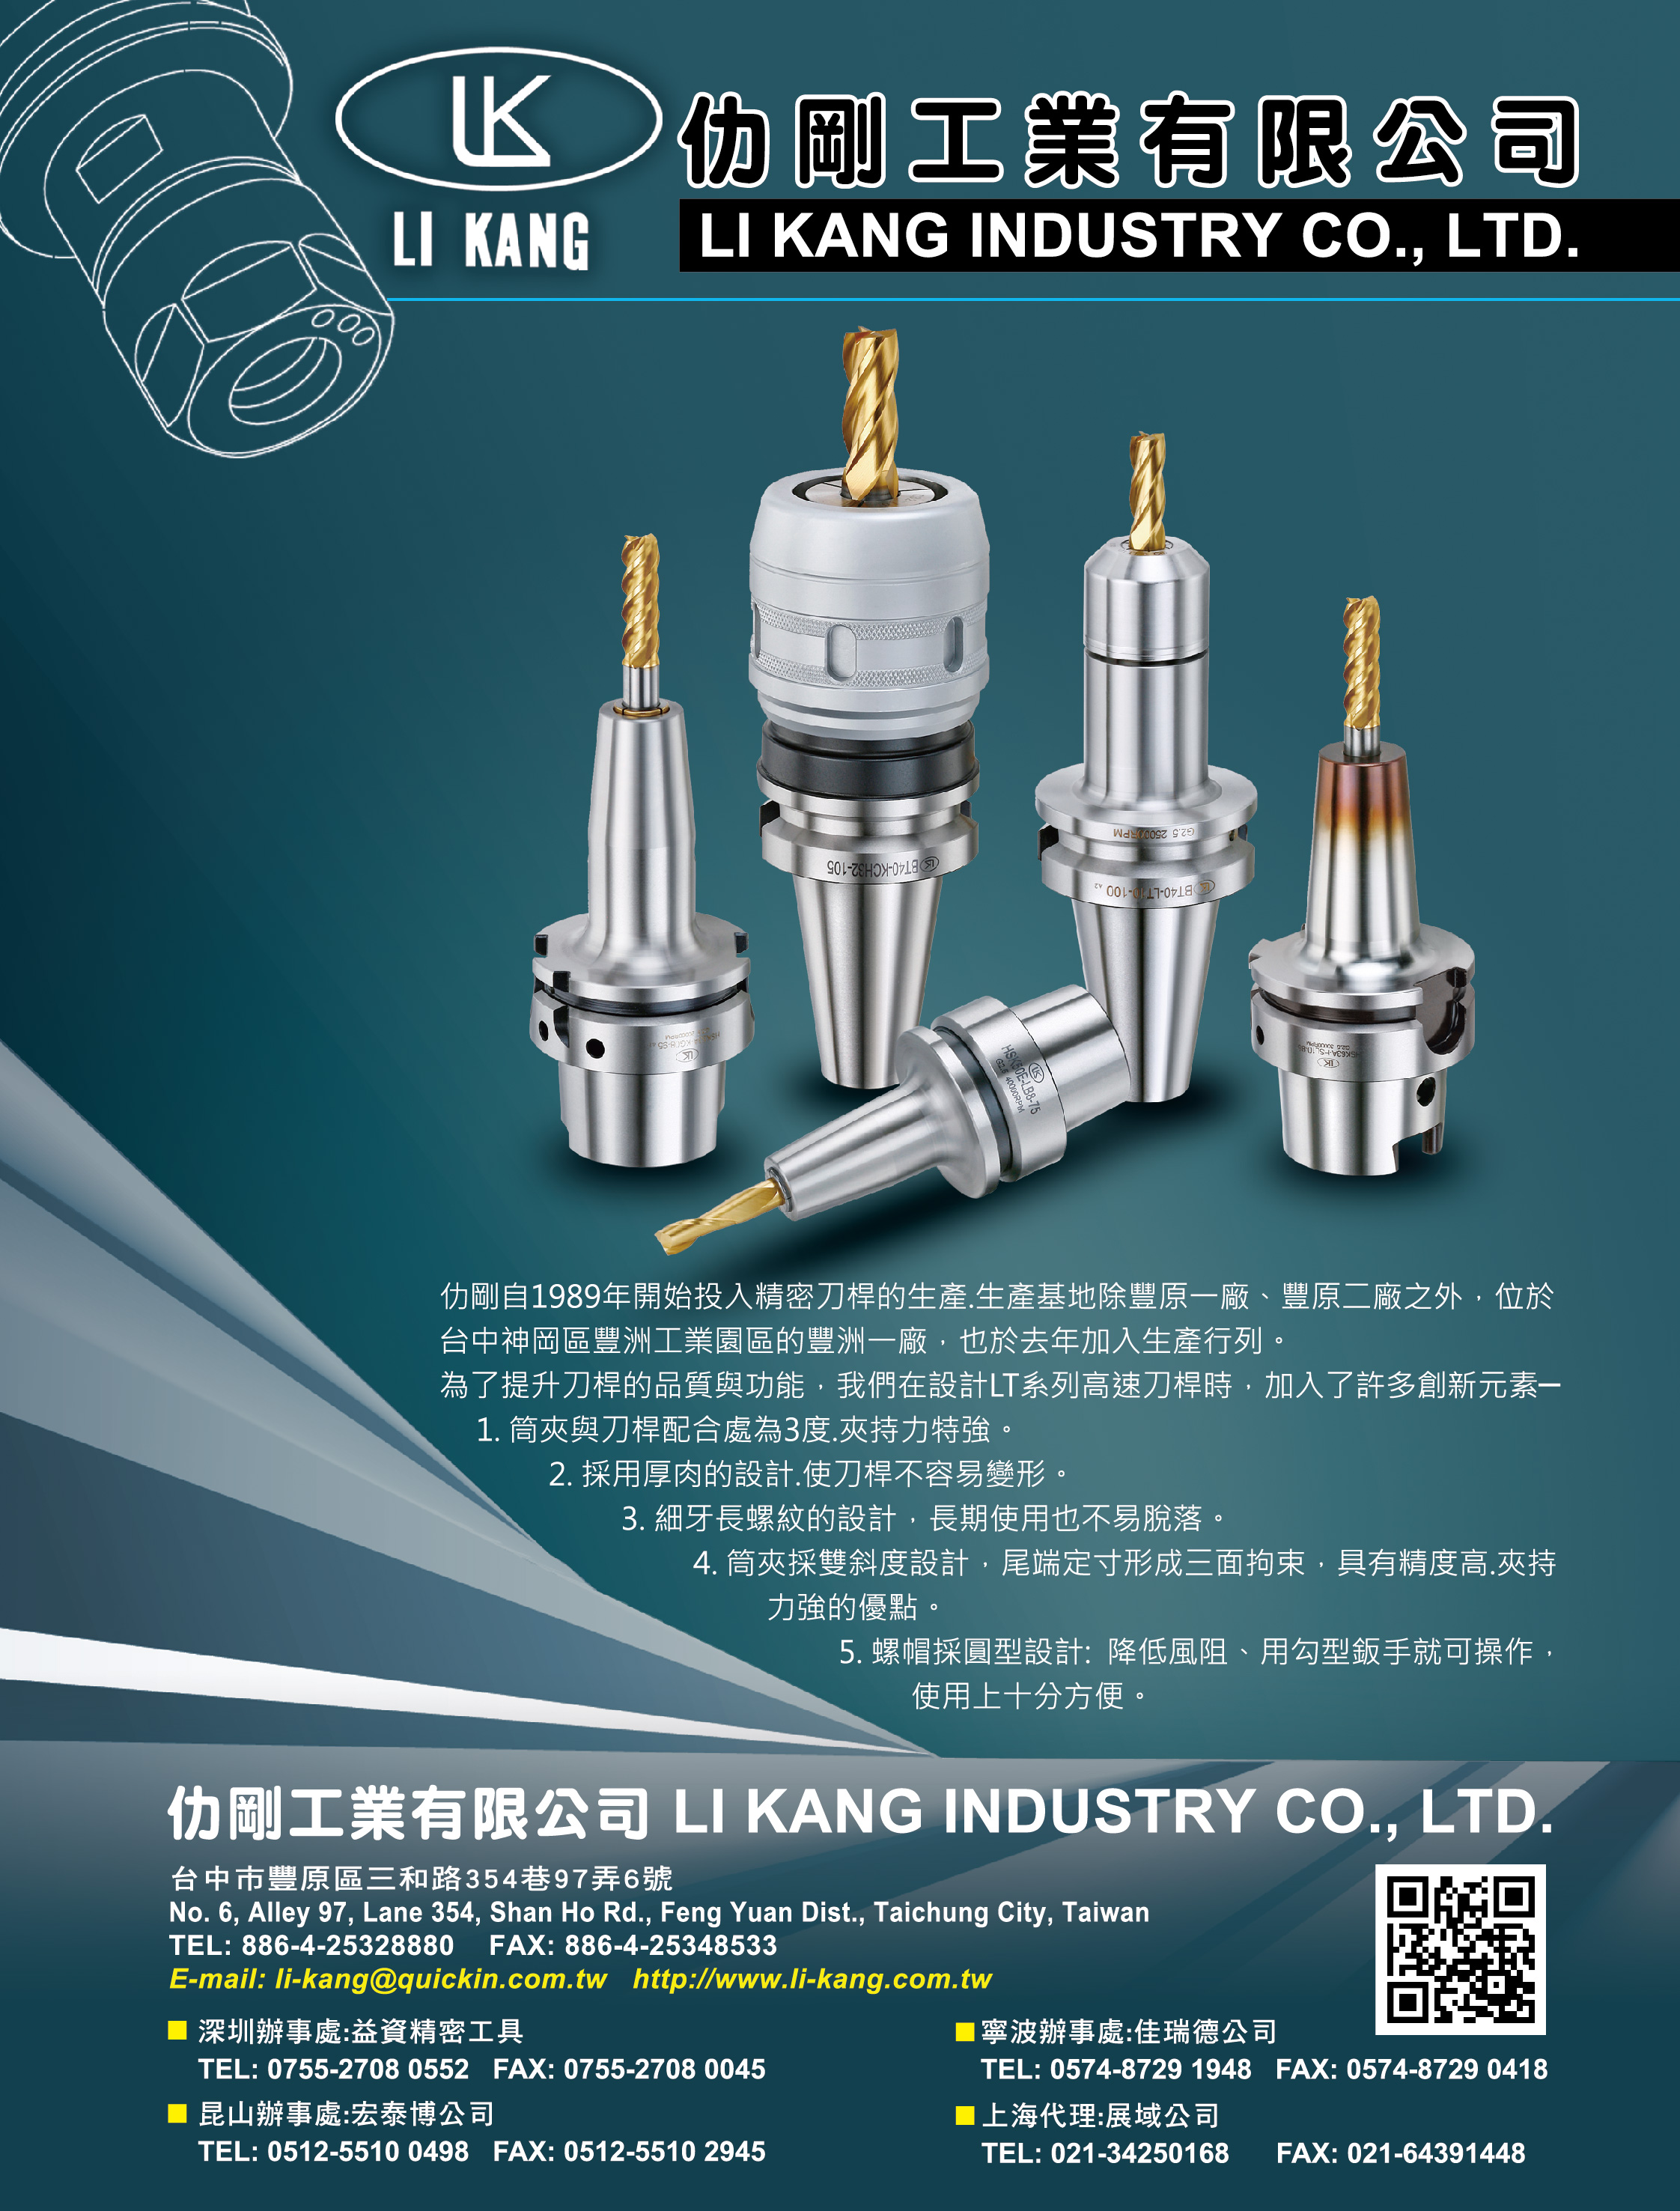 LI KANG INDUSTRY CO., LTD.